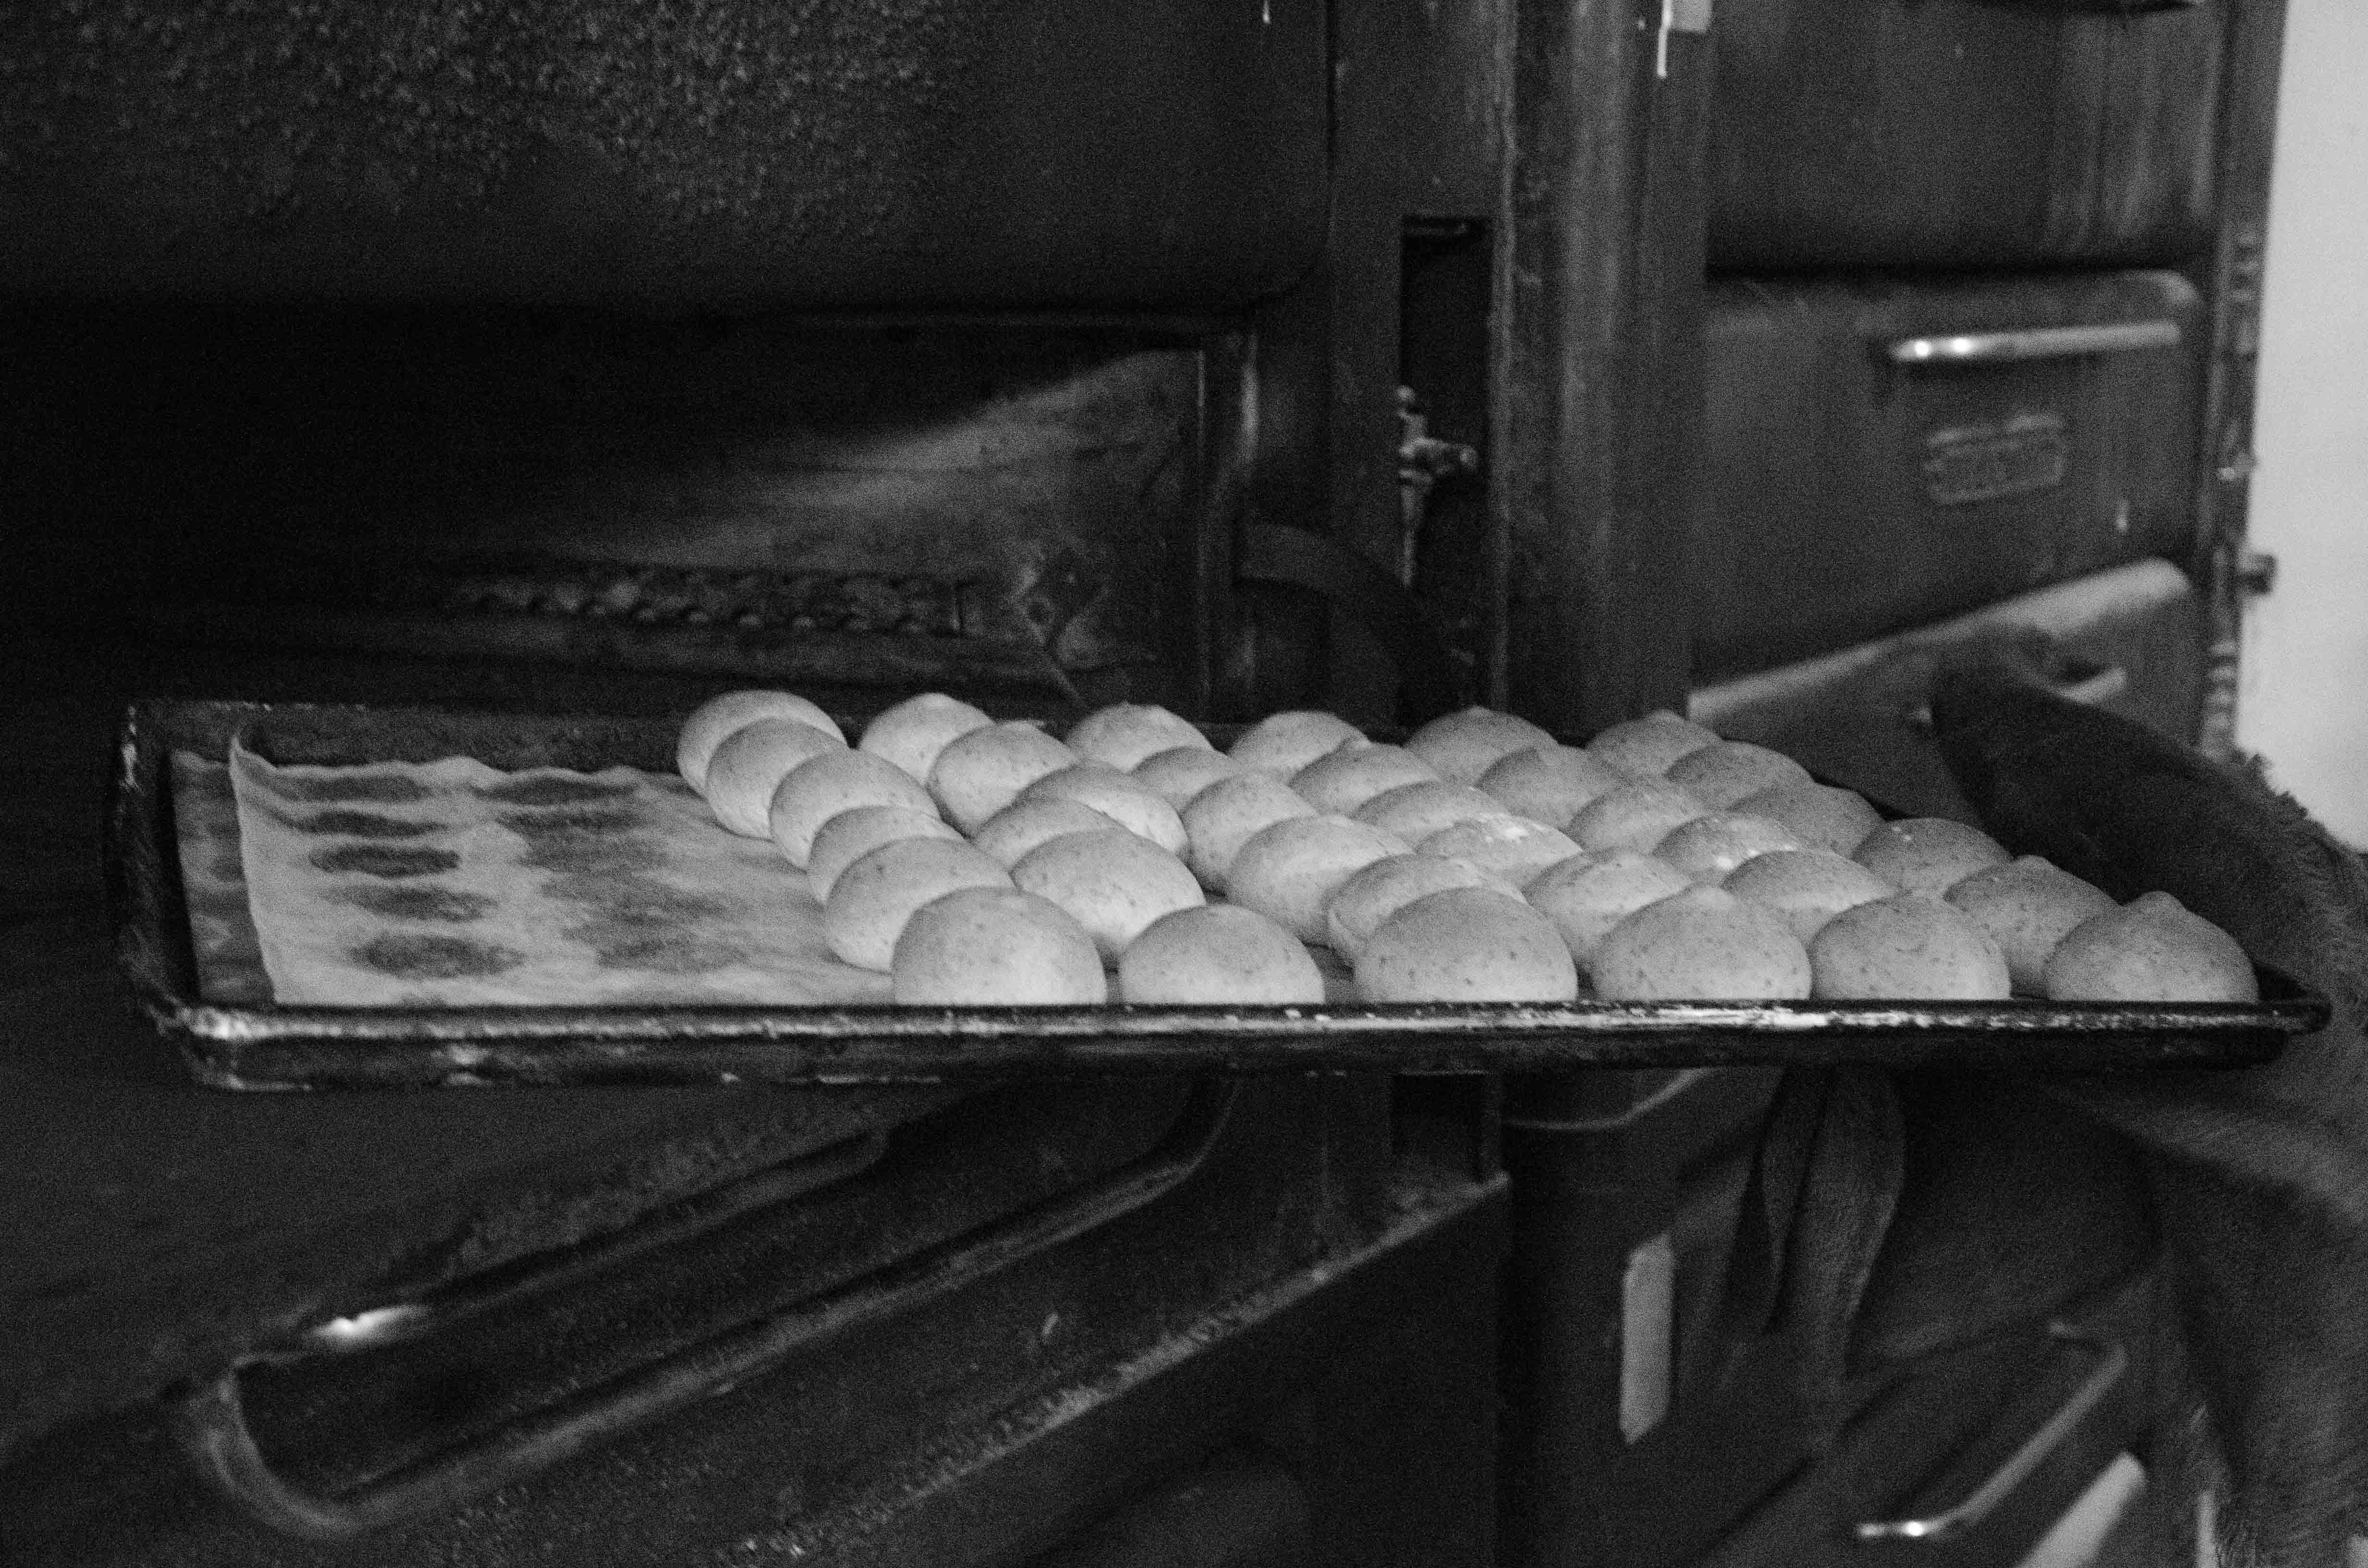 Wheat rolls coming out of the oven